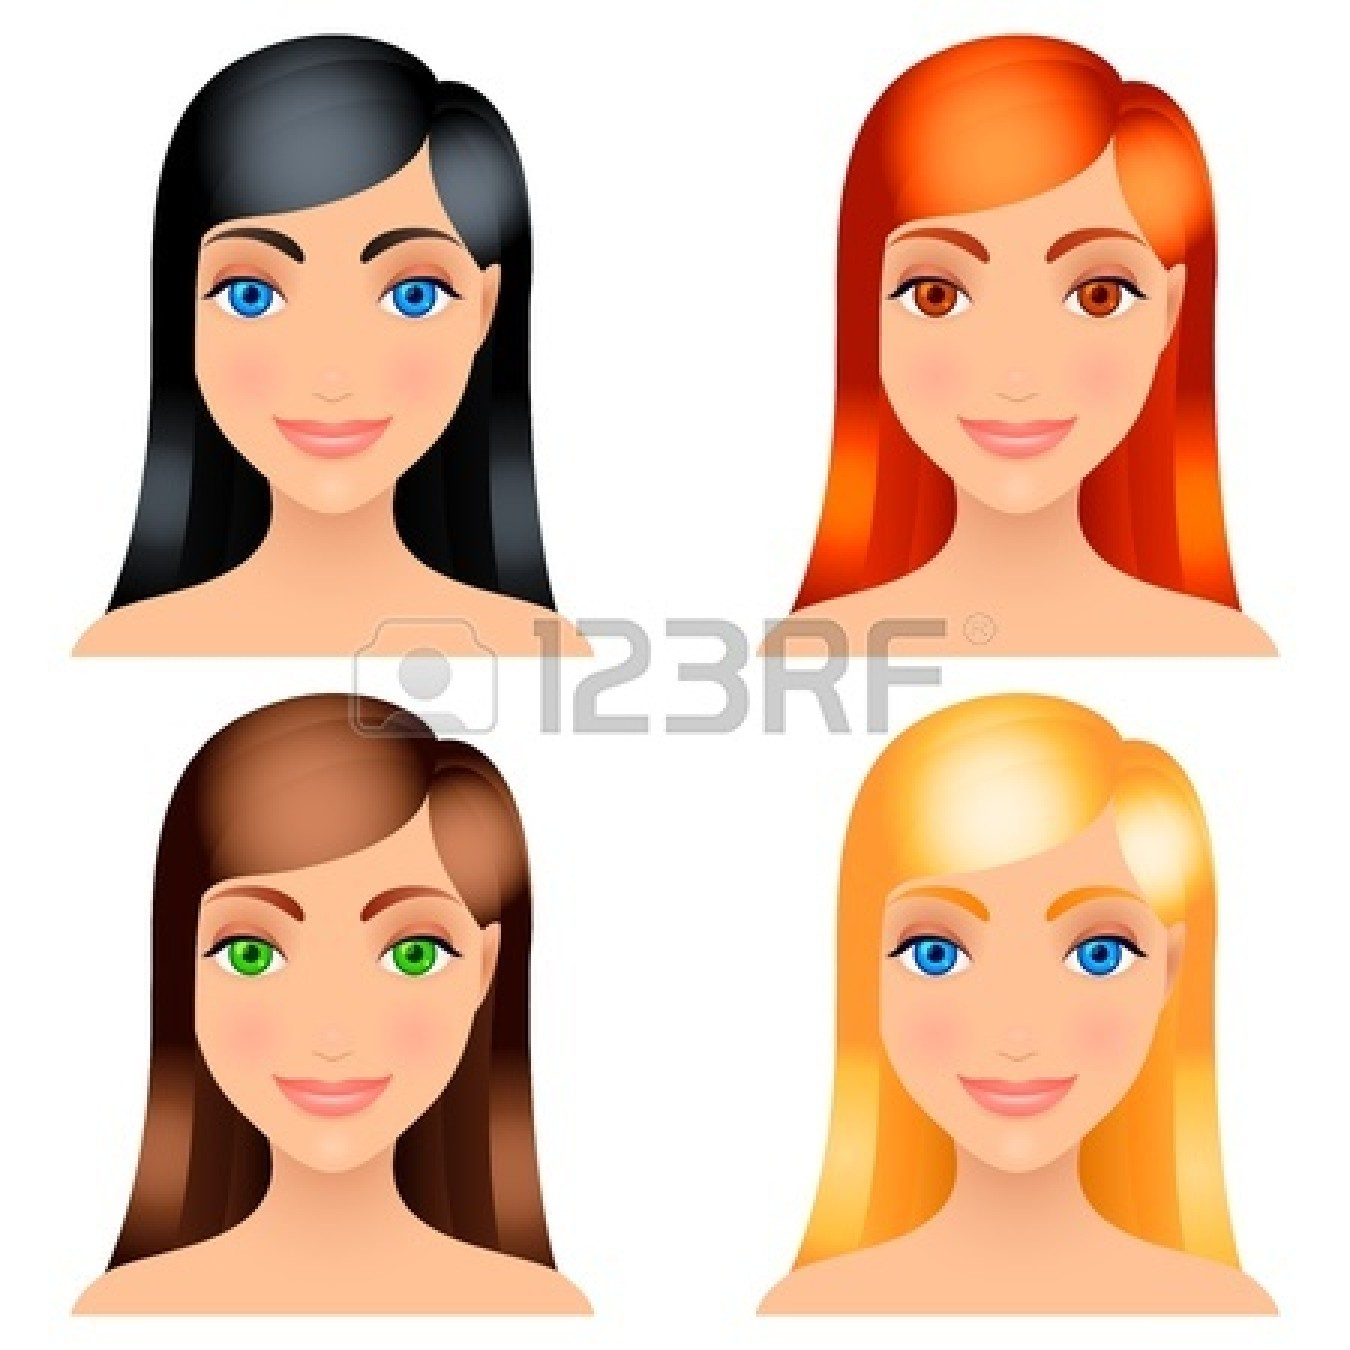 Hair clipart straight Black Images natural%20black%20hair%20clipart Hair Clipart